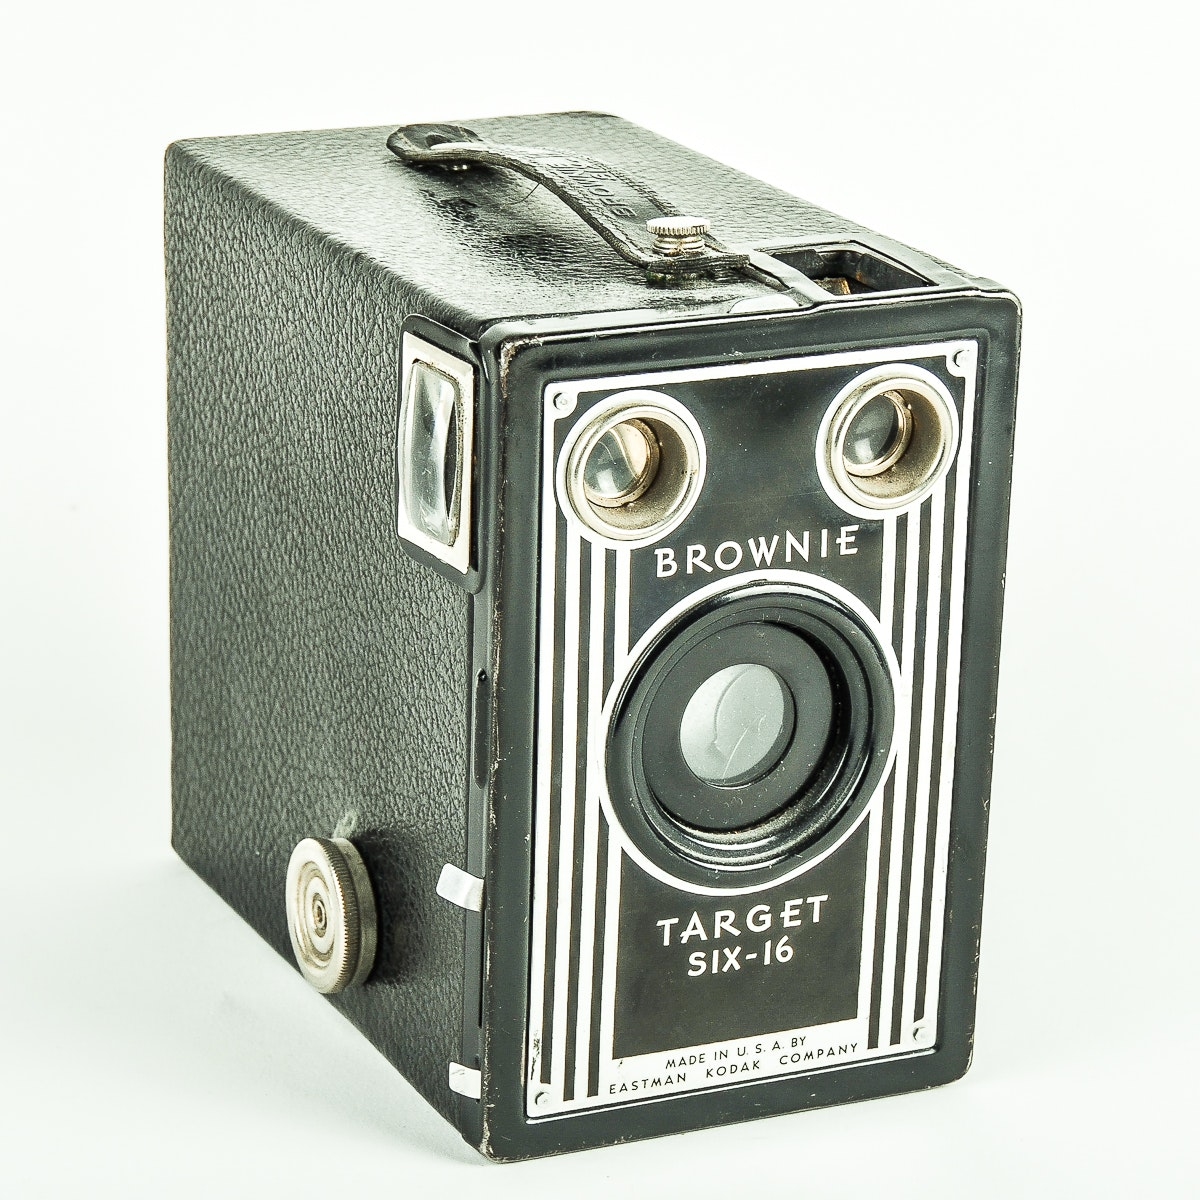 Circa 1940s Eastman Kodak Company Brownie Target Six-16 Camera